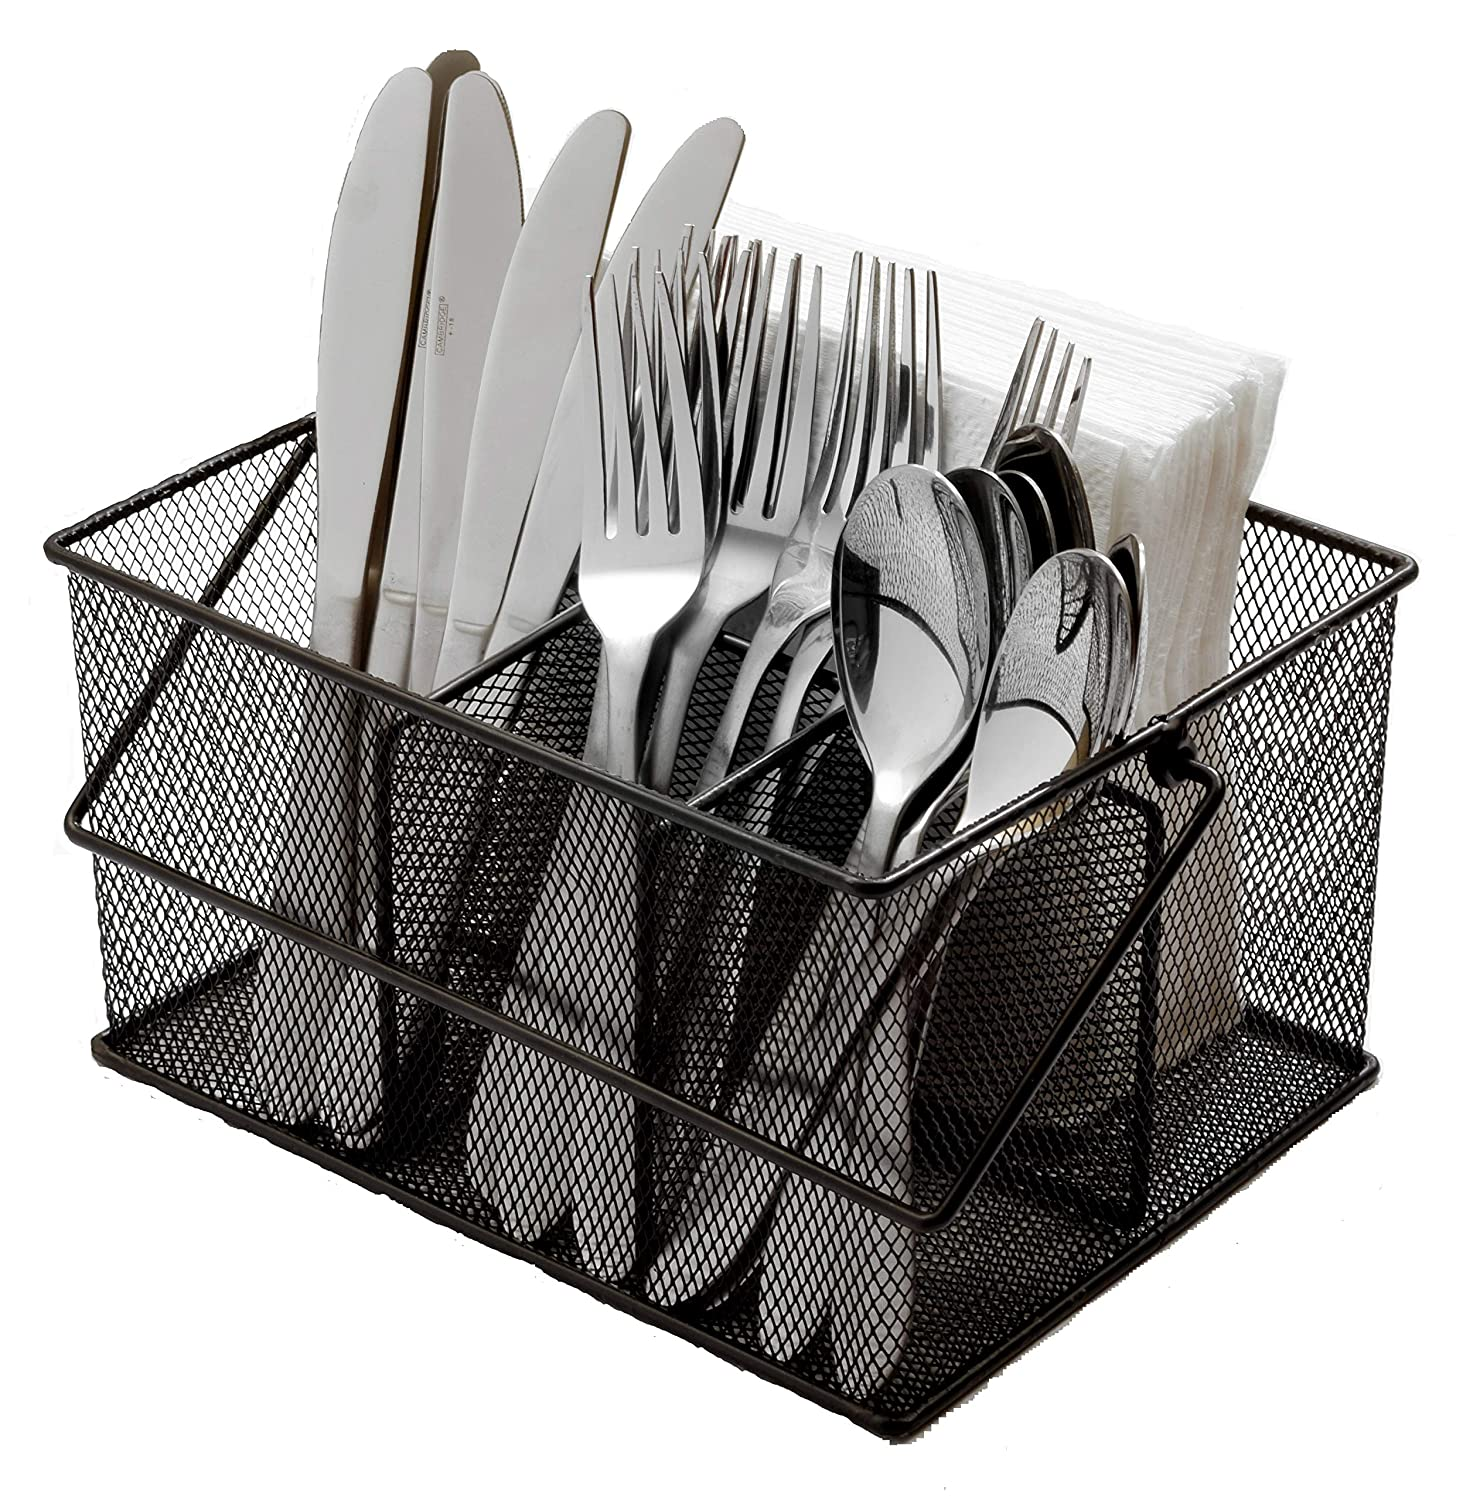 Ashman Silverware Caddy - Flatware, Cutlery, and Utensil Organizer with Napkin Holder & Condiments for Kitchen, Dining, Outdoors, Picnics and Parties - (Black Steel Mesh) AshmanOnline AM6894